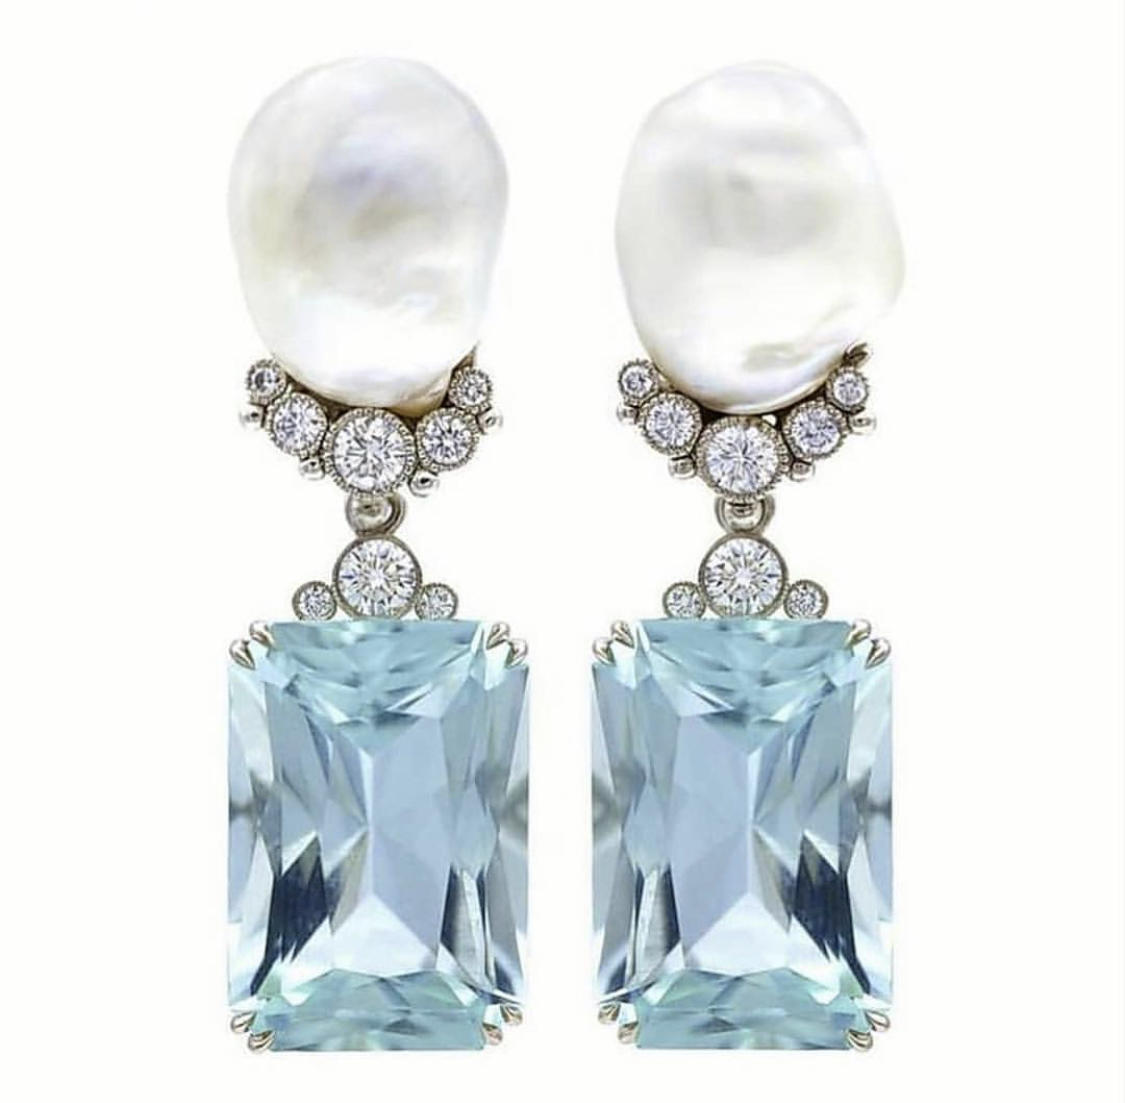 Aquamarine, Peral, Diamonds Earrings by Alex Blal